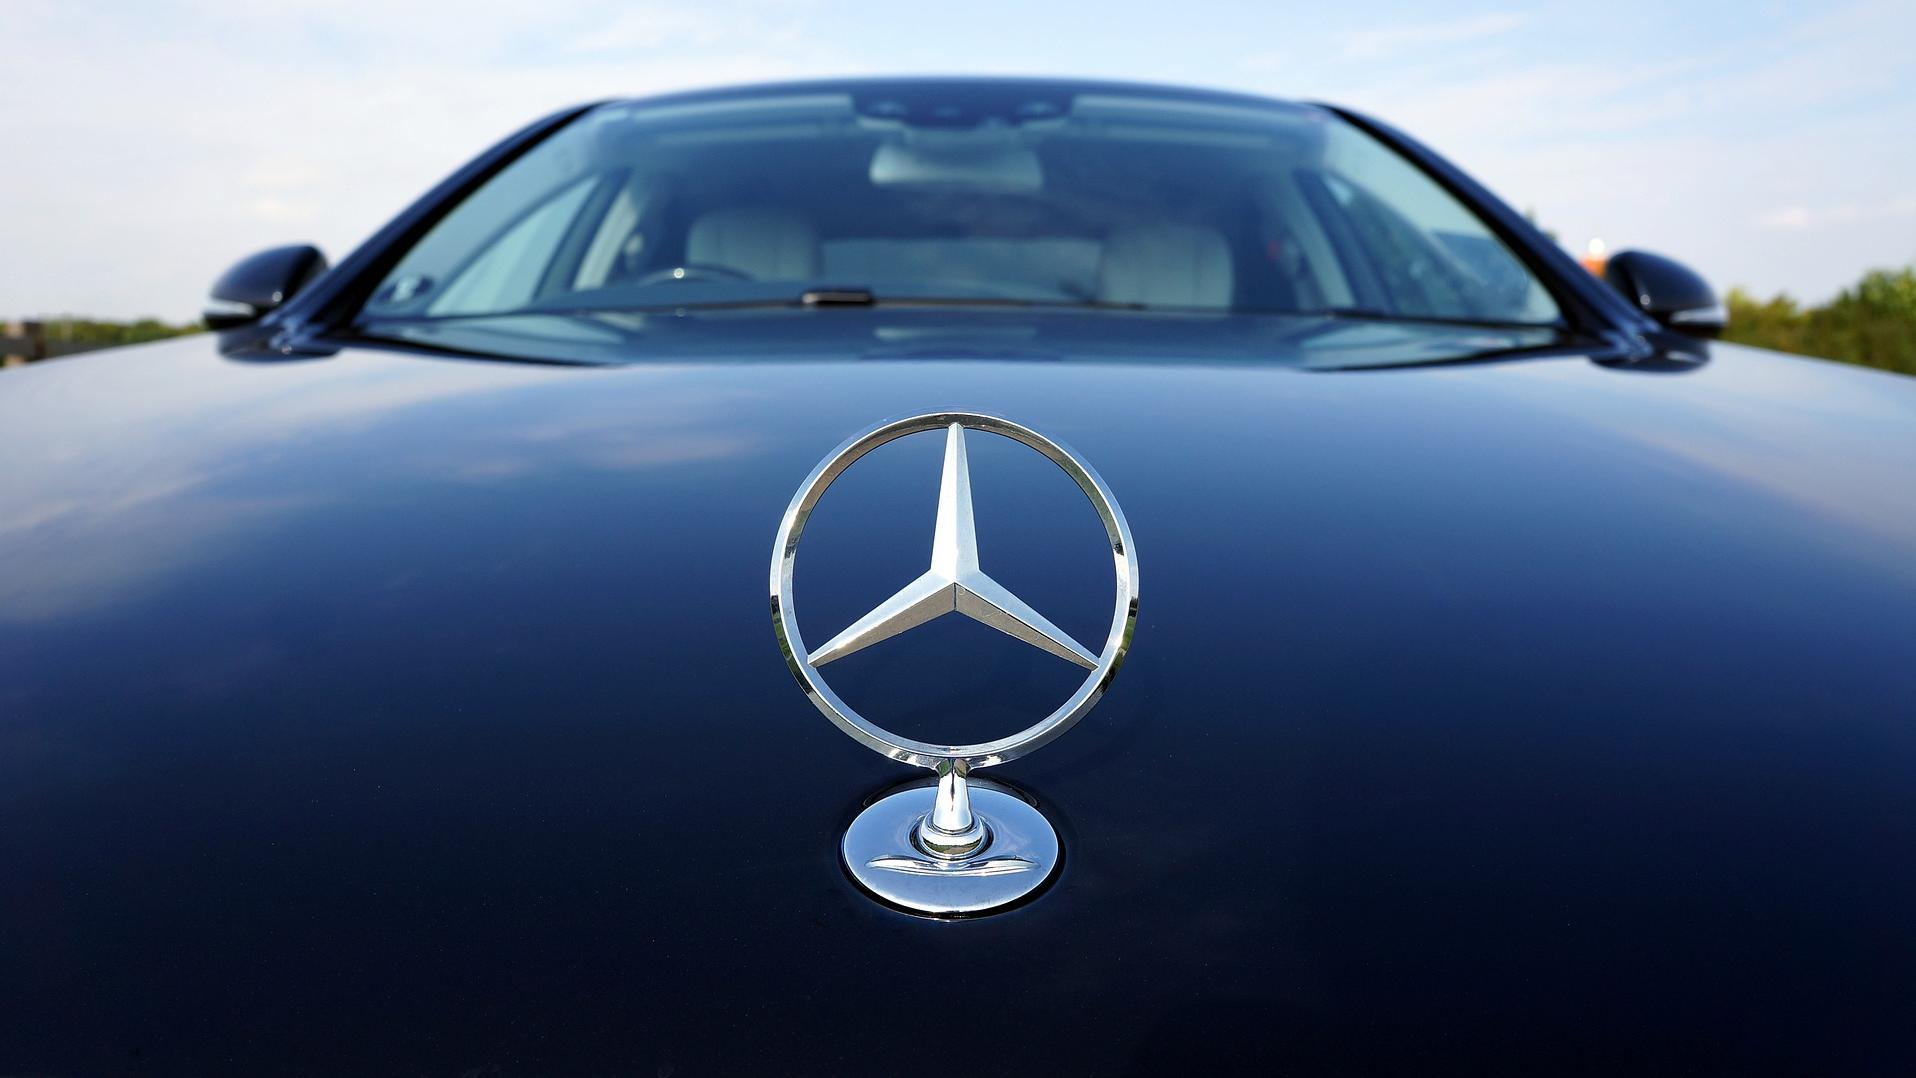 Mercedes-Benz is expected to bring more electric cars to India in the coming period, including an EQS sedan and SUV.  Photo: Mikes-Photography from Pixabay